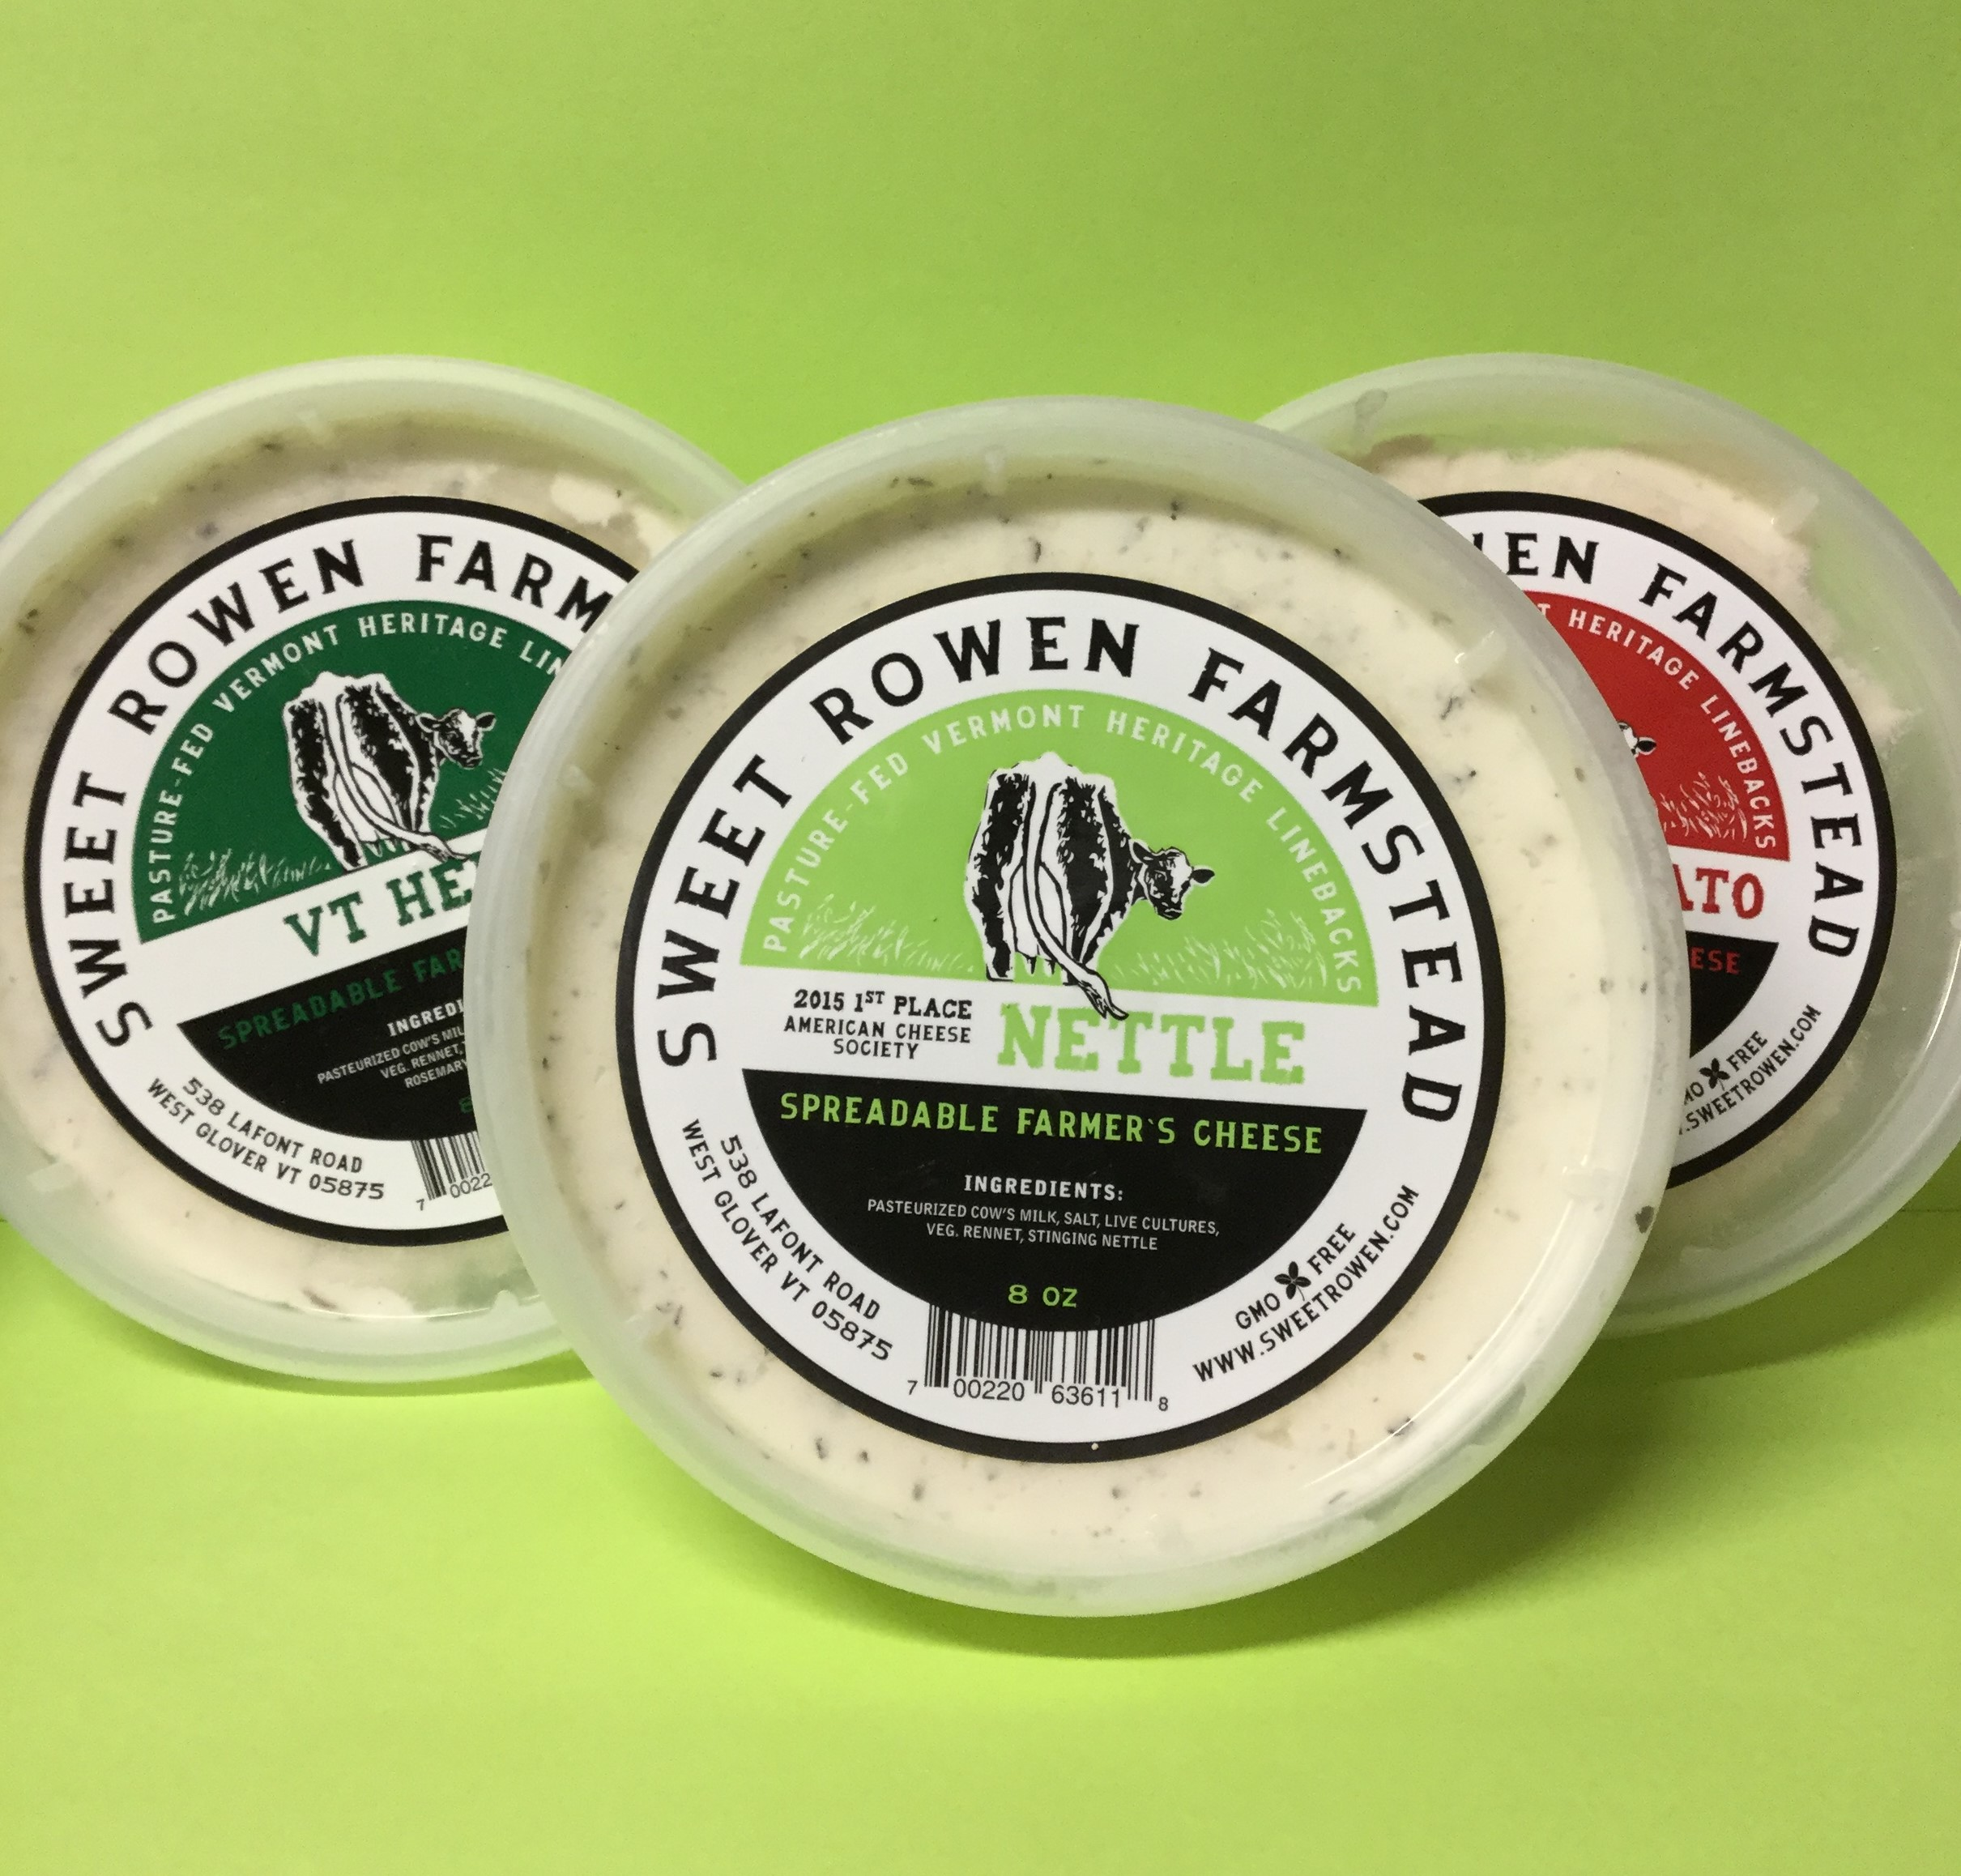 SWEET ROWEN FARMSTEAD Spreadable Farmer's Cheese